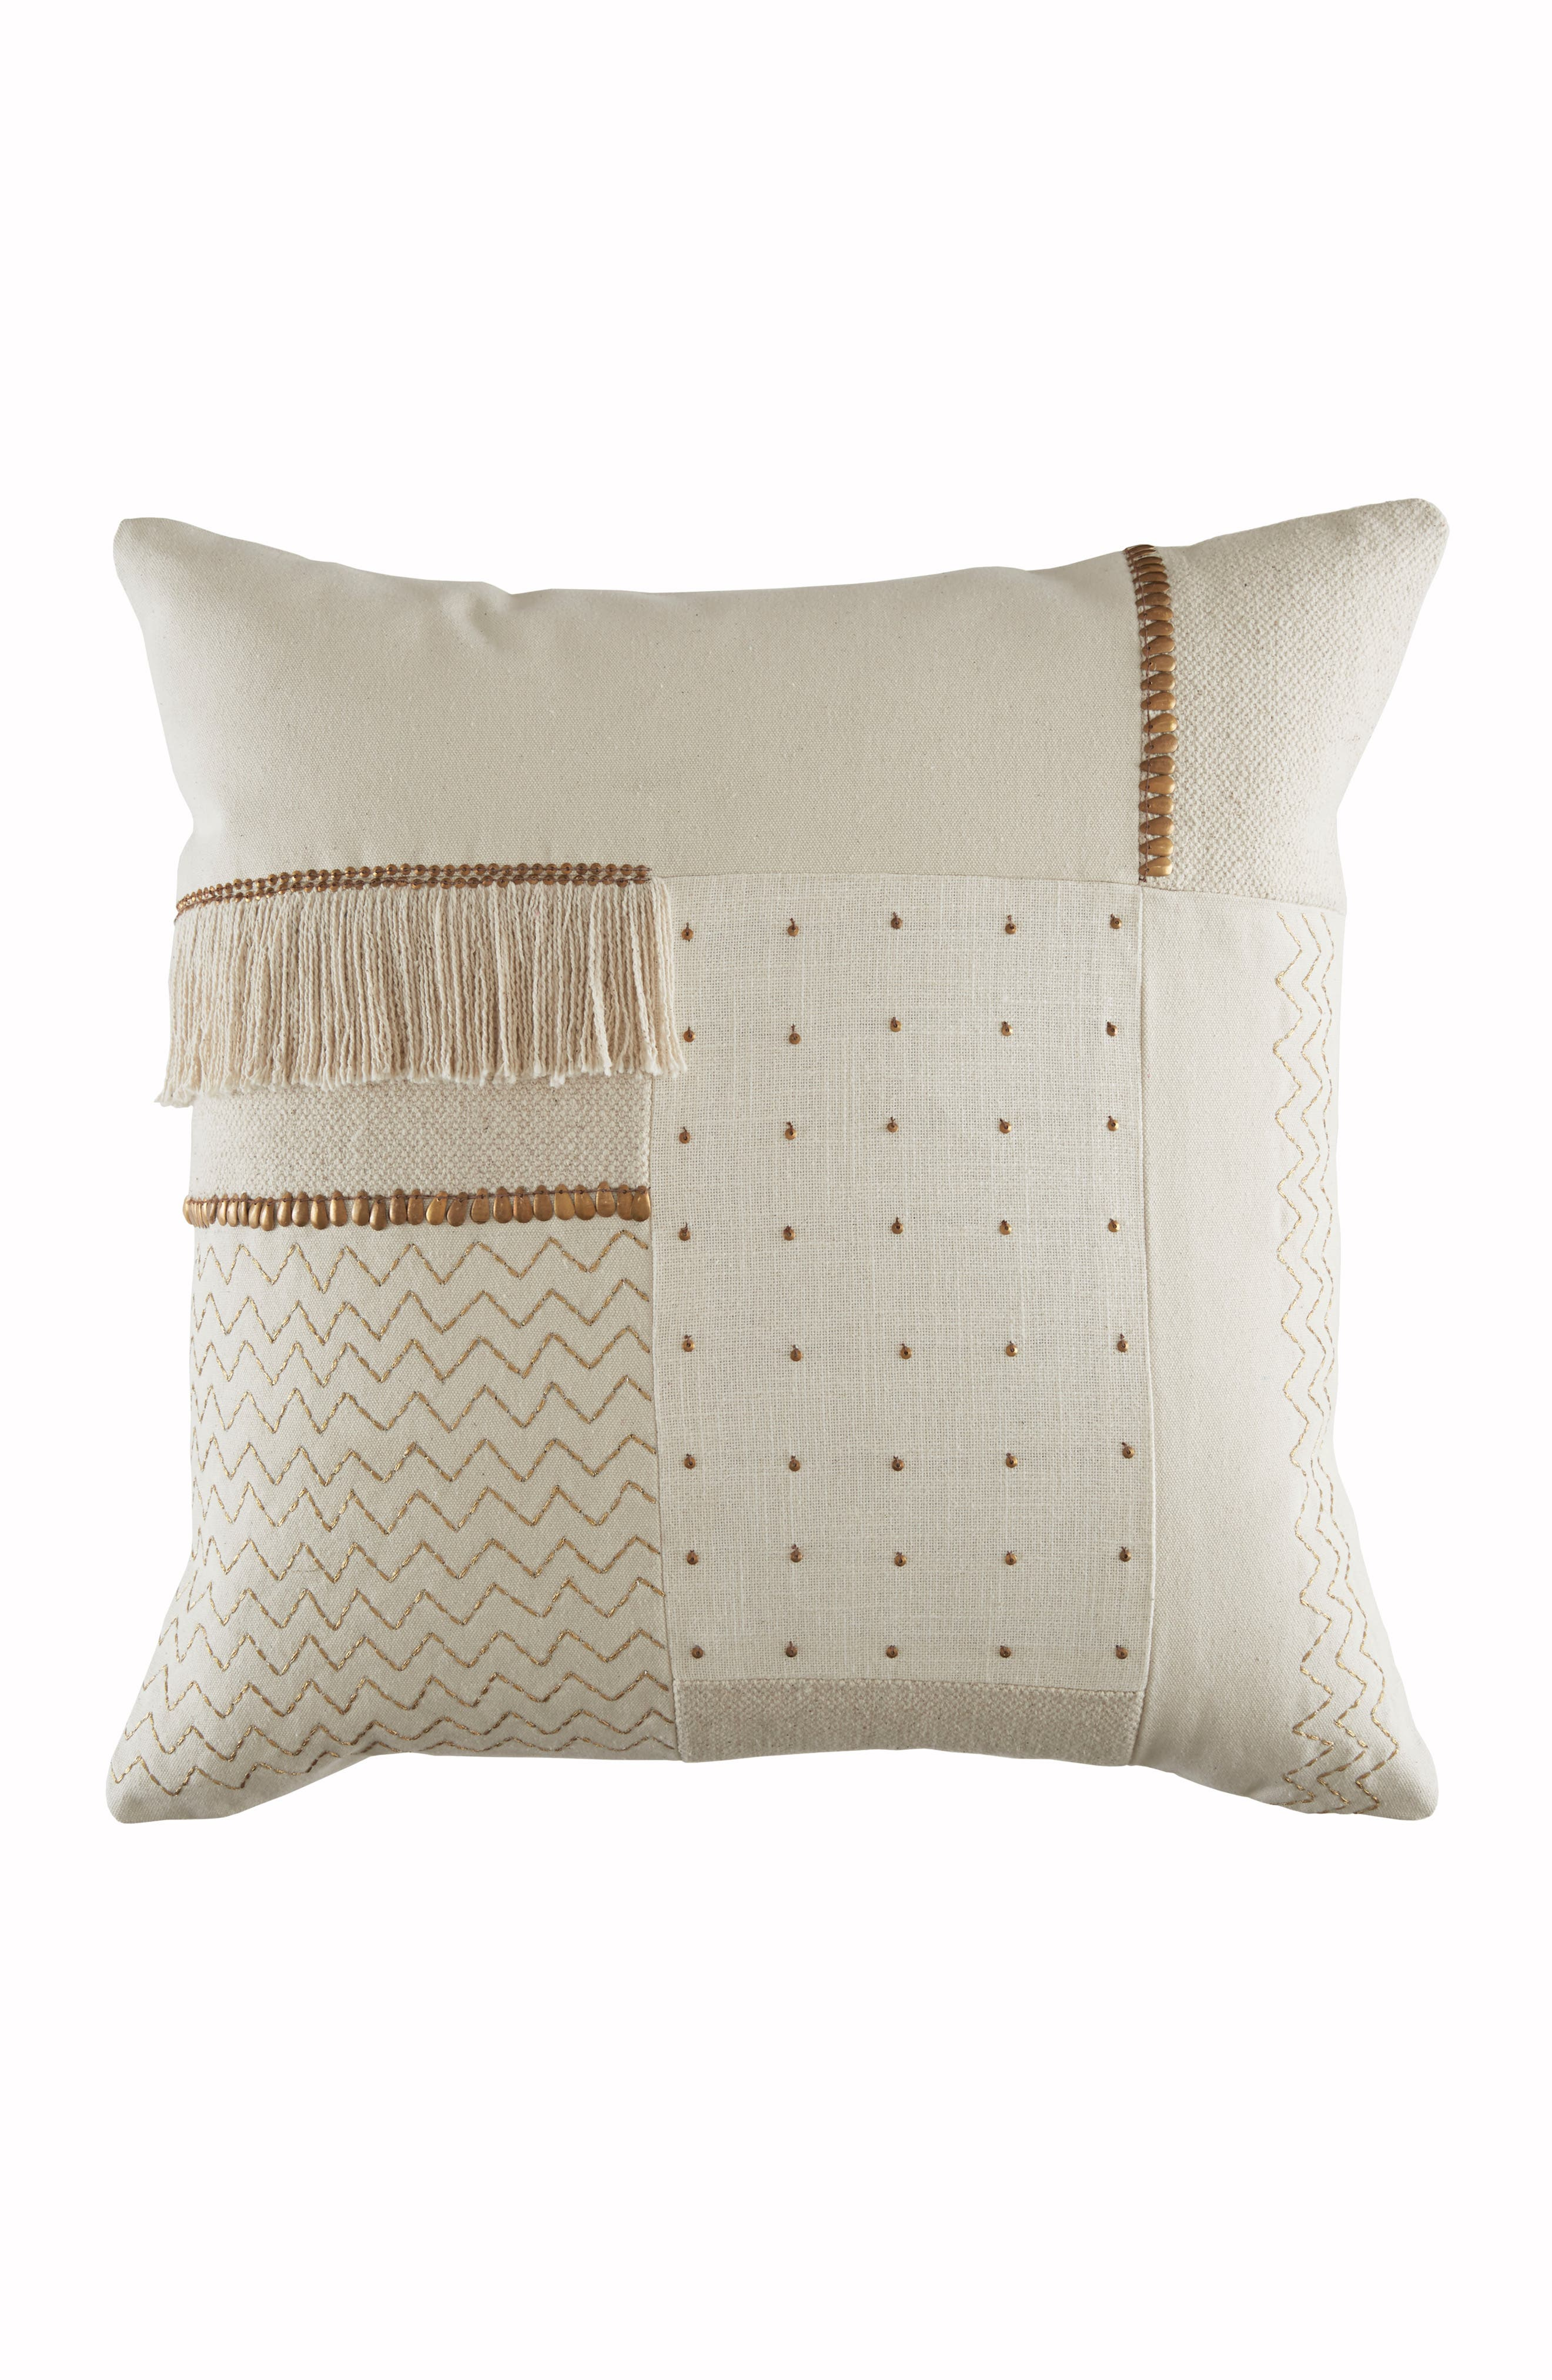 Zadie Accent Pillow,                         Main,                         color, Natural